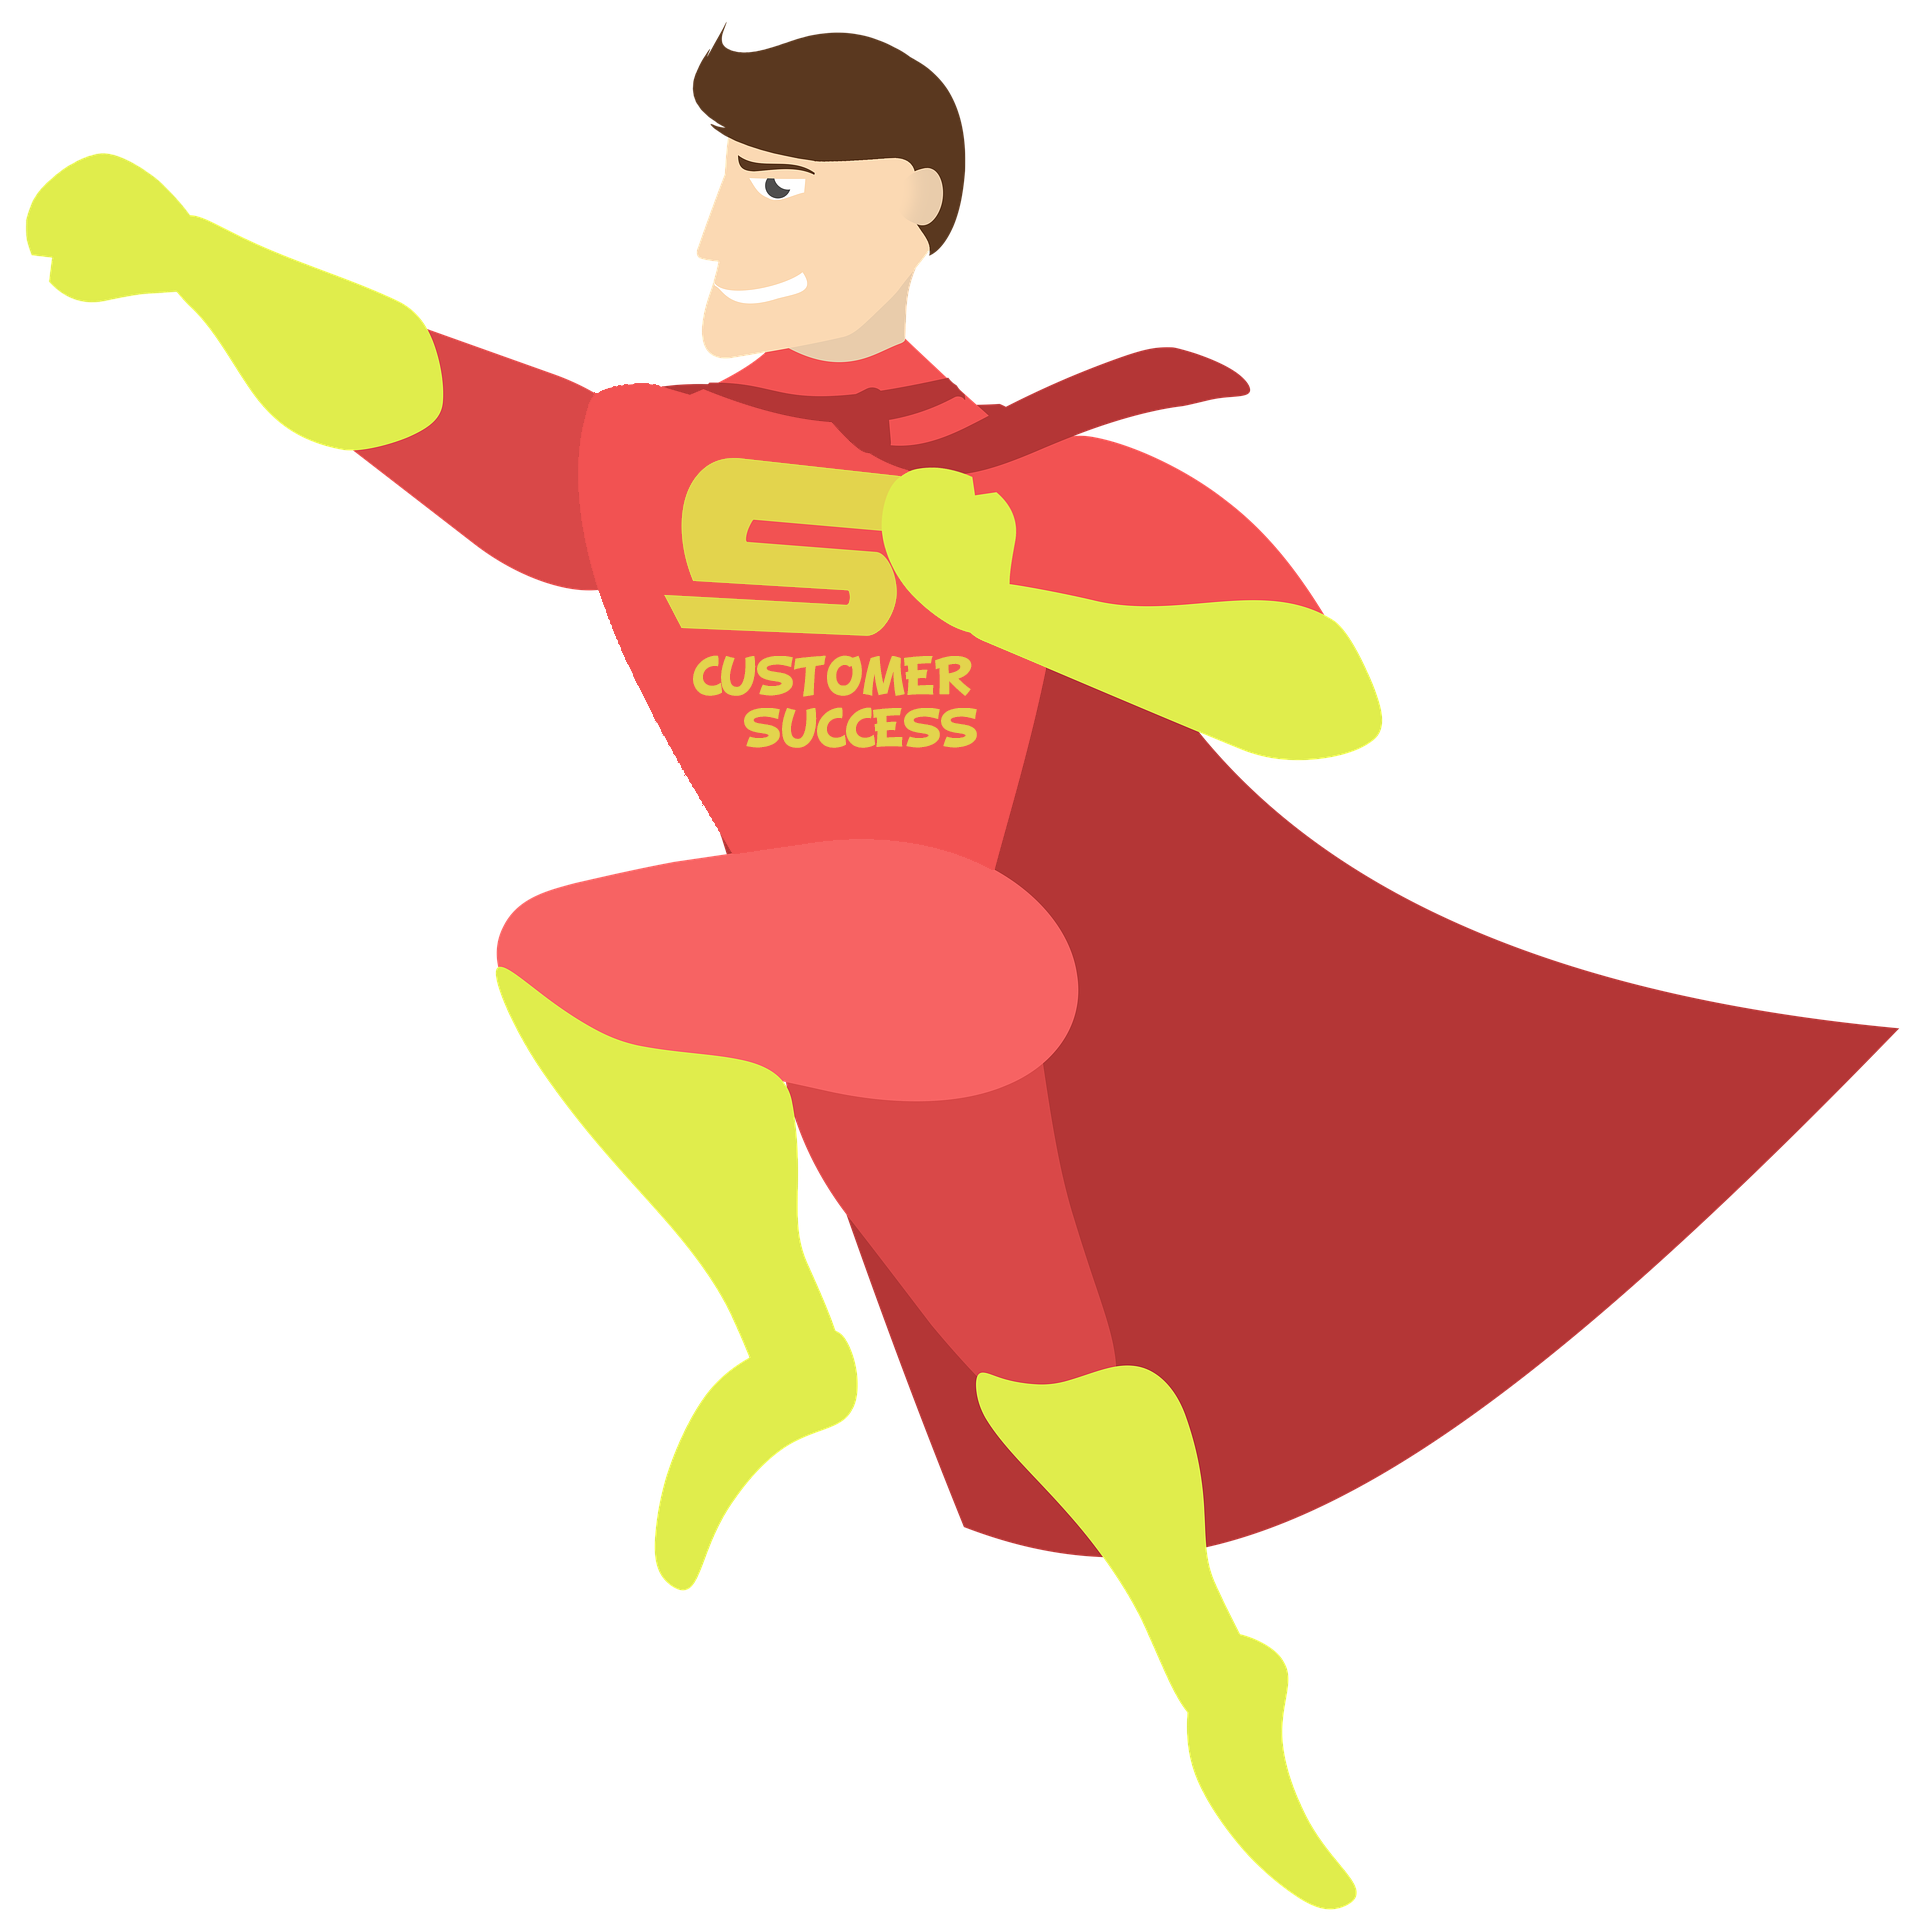 Why customer success matters. Manager clipart successful